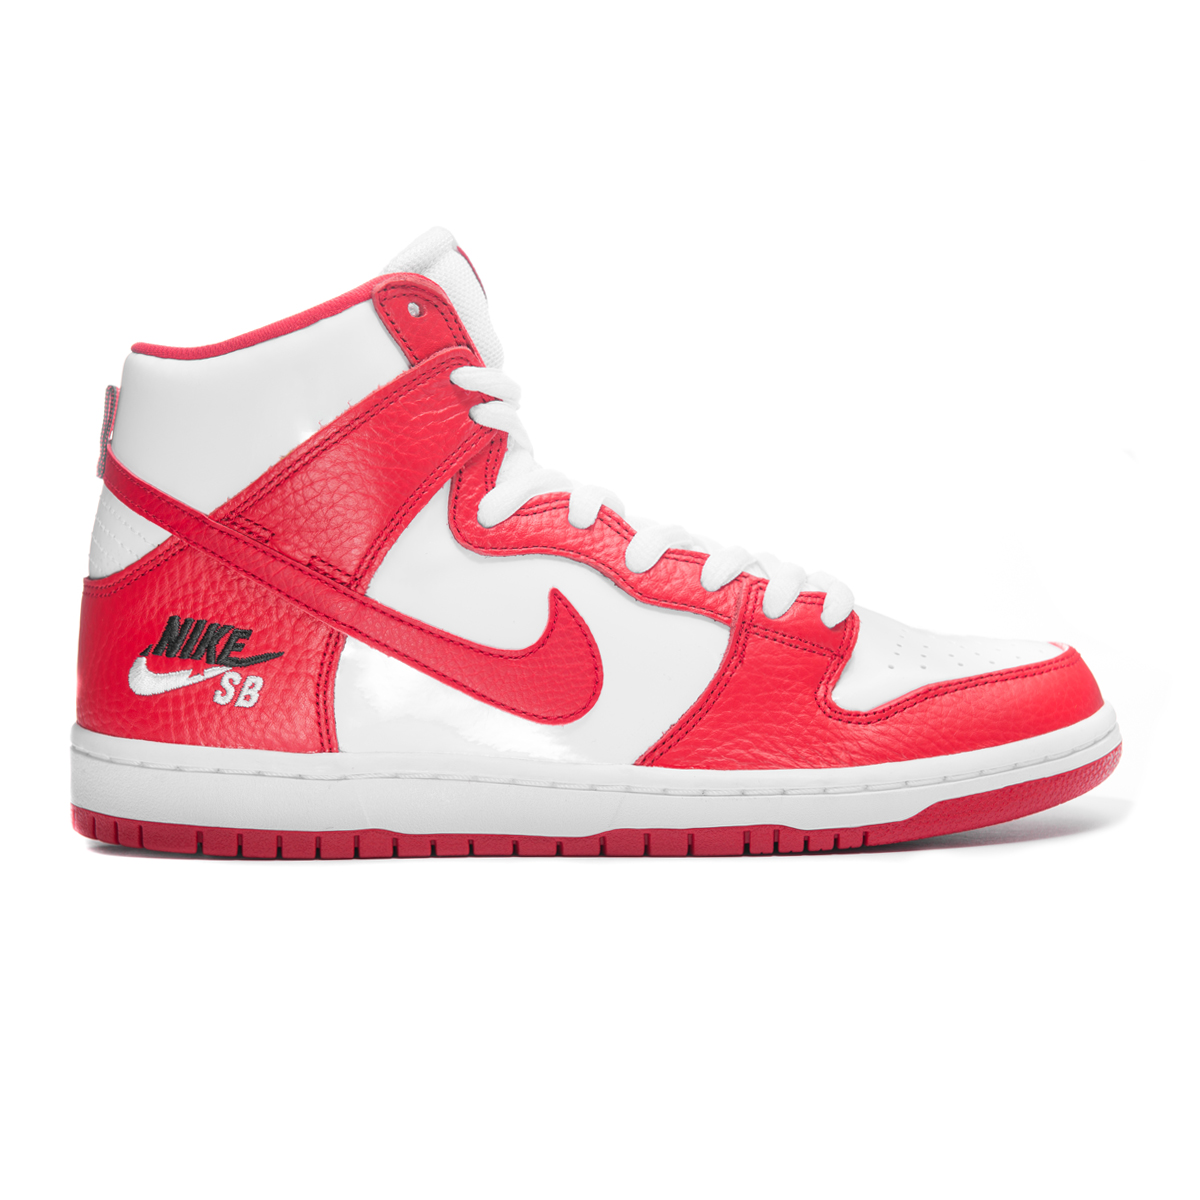 Buty Nike SB Zoom Dunk High Pro University Red / White